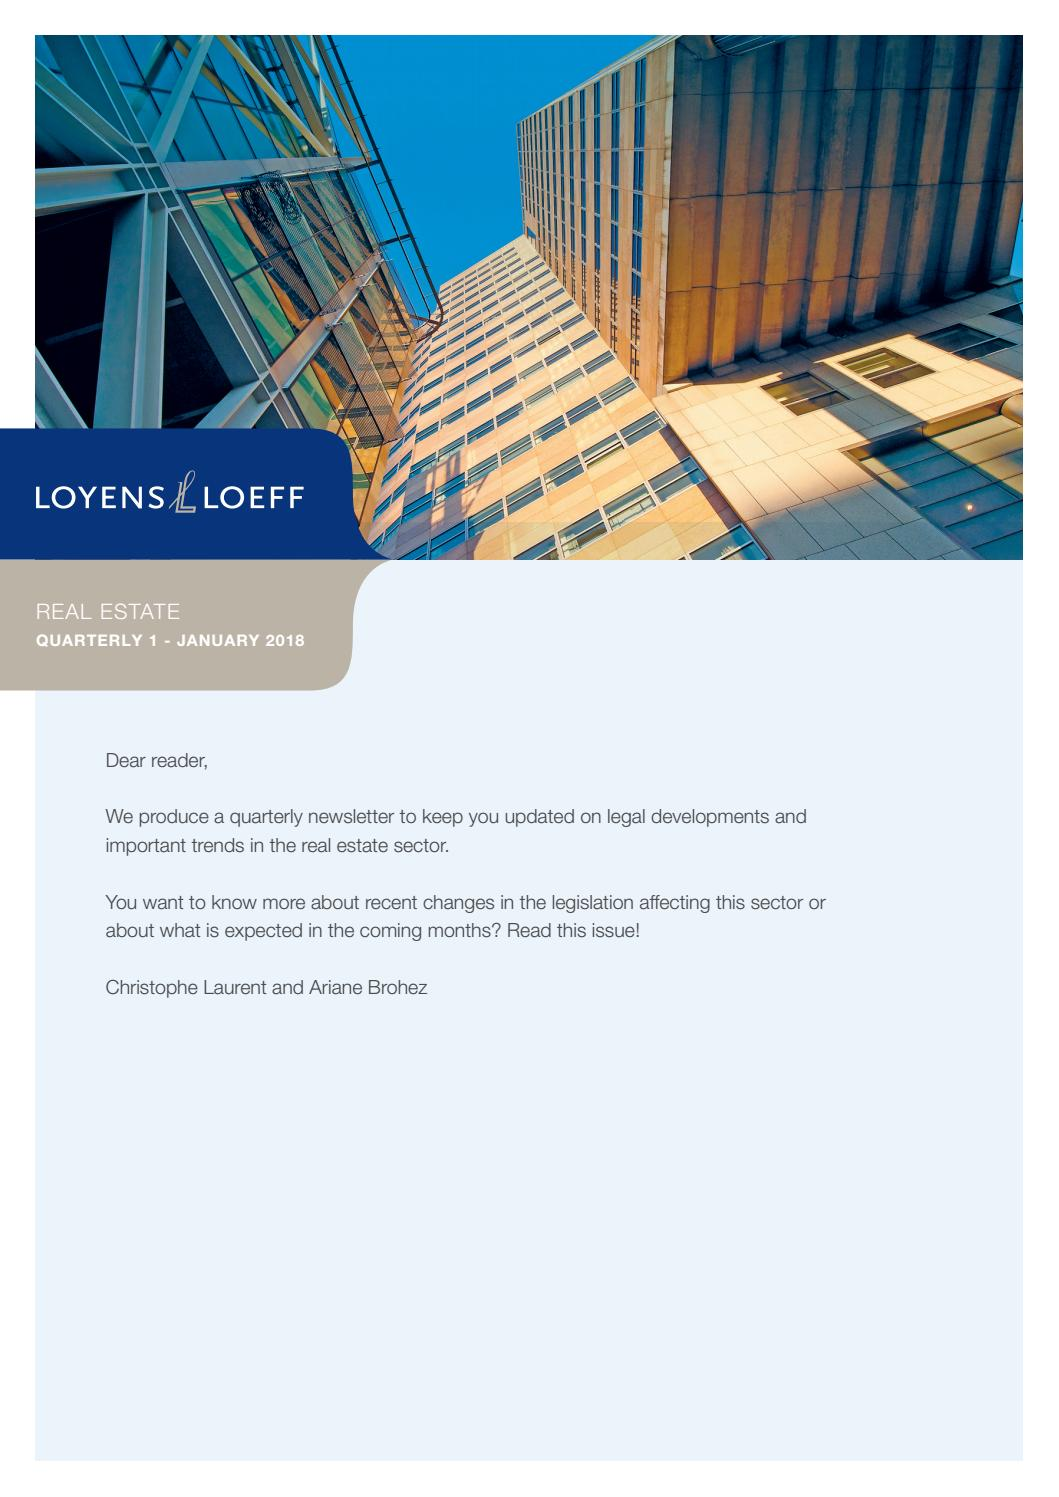 Loyens & Loeff Real Estate Flash back 2017 and flash forward 2018 by